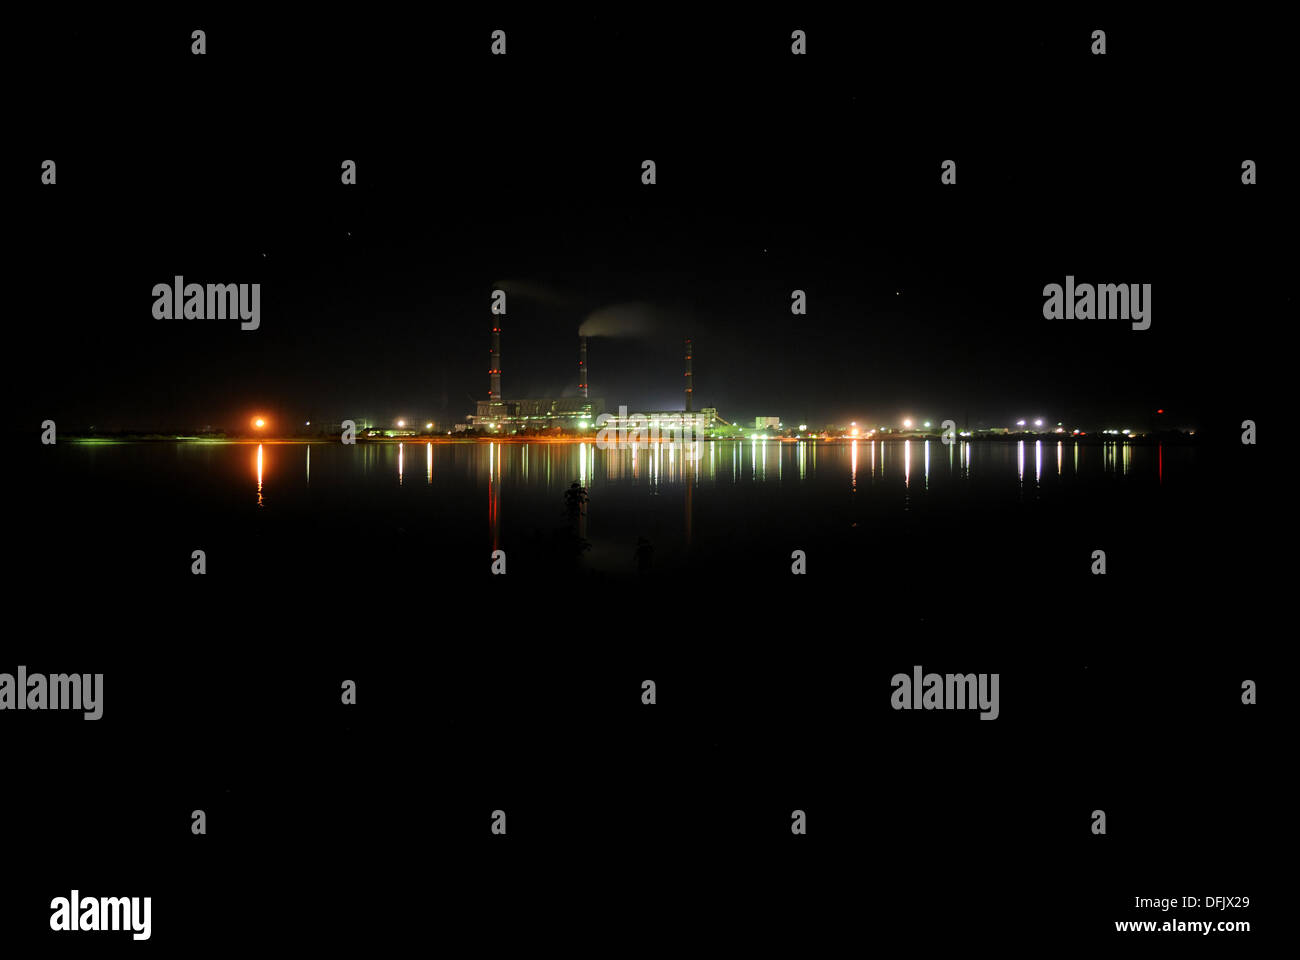 Thermal power station - Stock Image